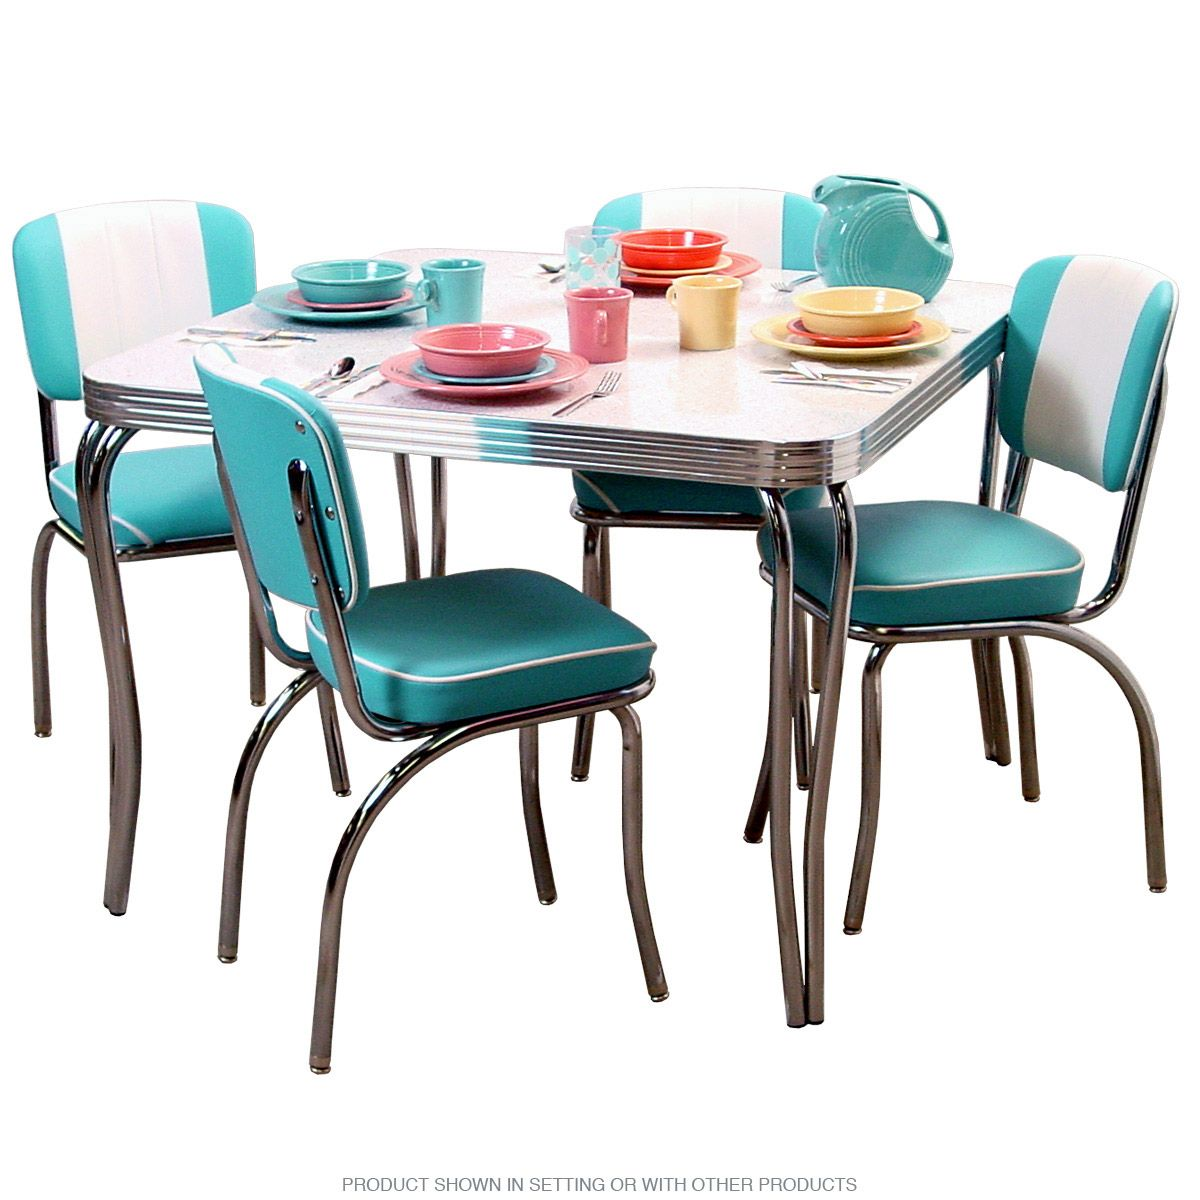 Dinette Set Come Complete With 4 Channel Back Chairs And A Square Formica Top Table Quality Style This Commercial Grade 50s Dining